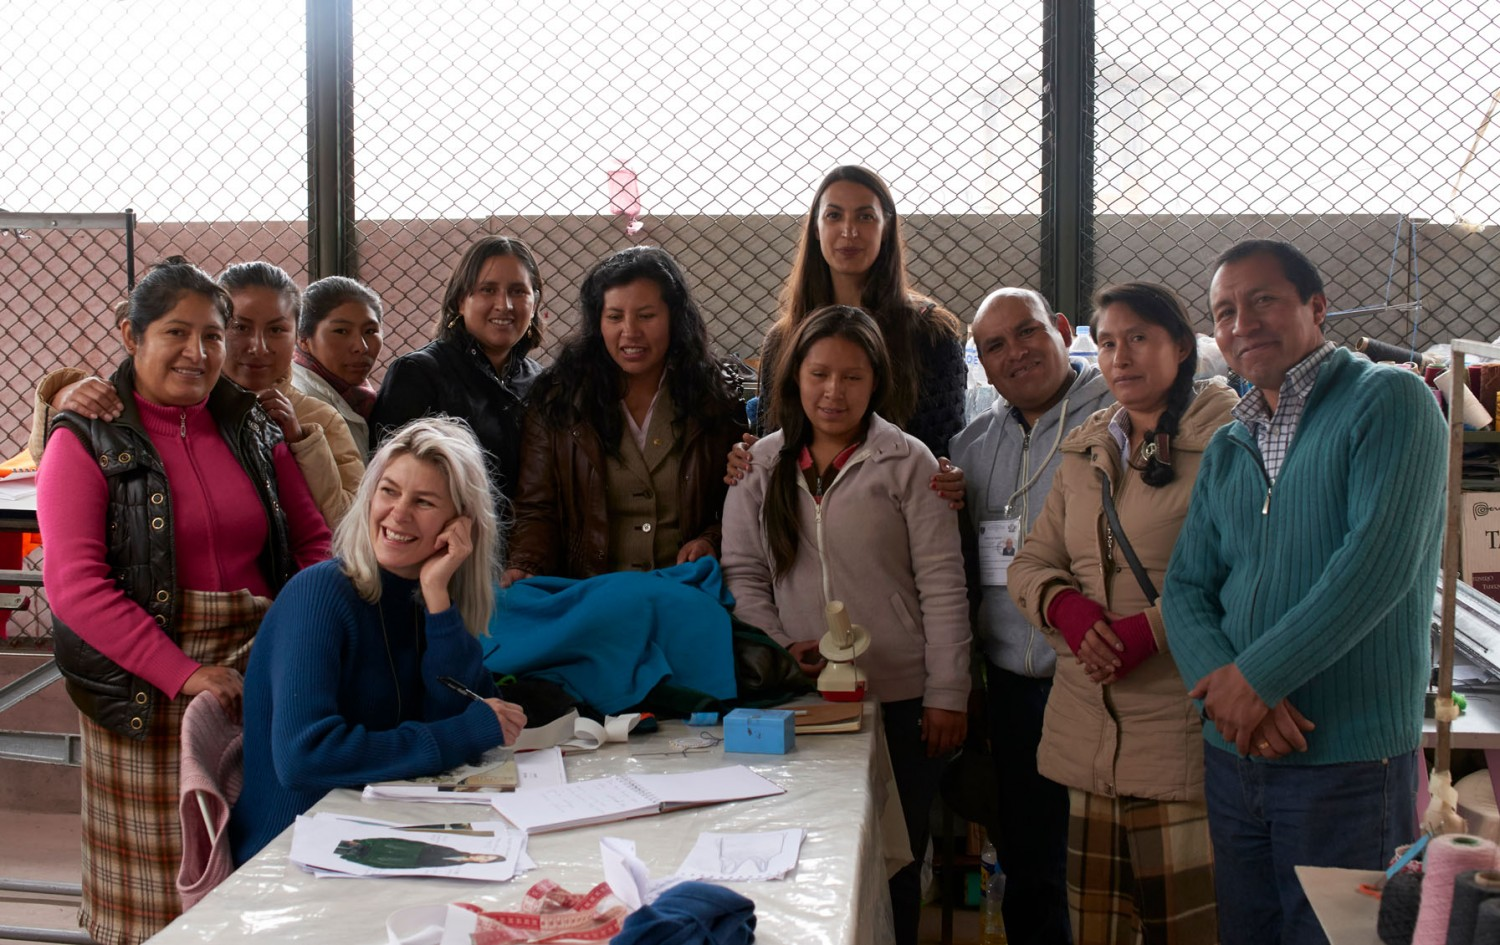 The team of knitters and the designers at the prison.